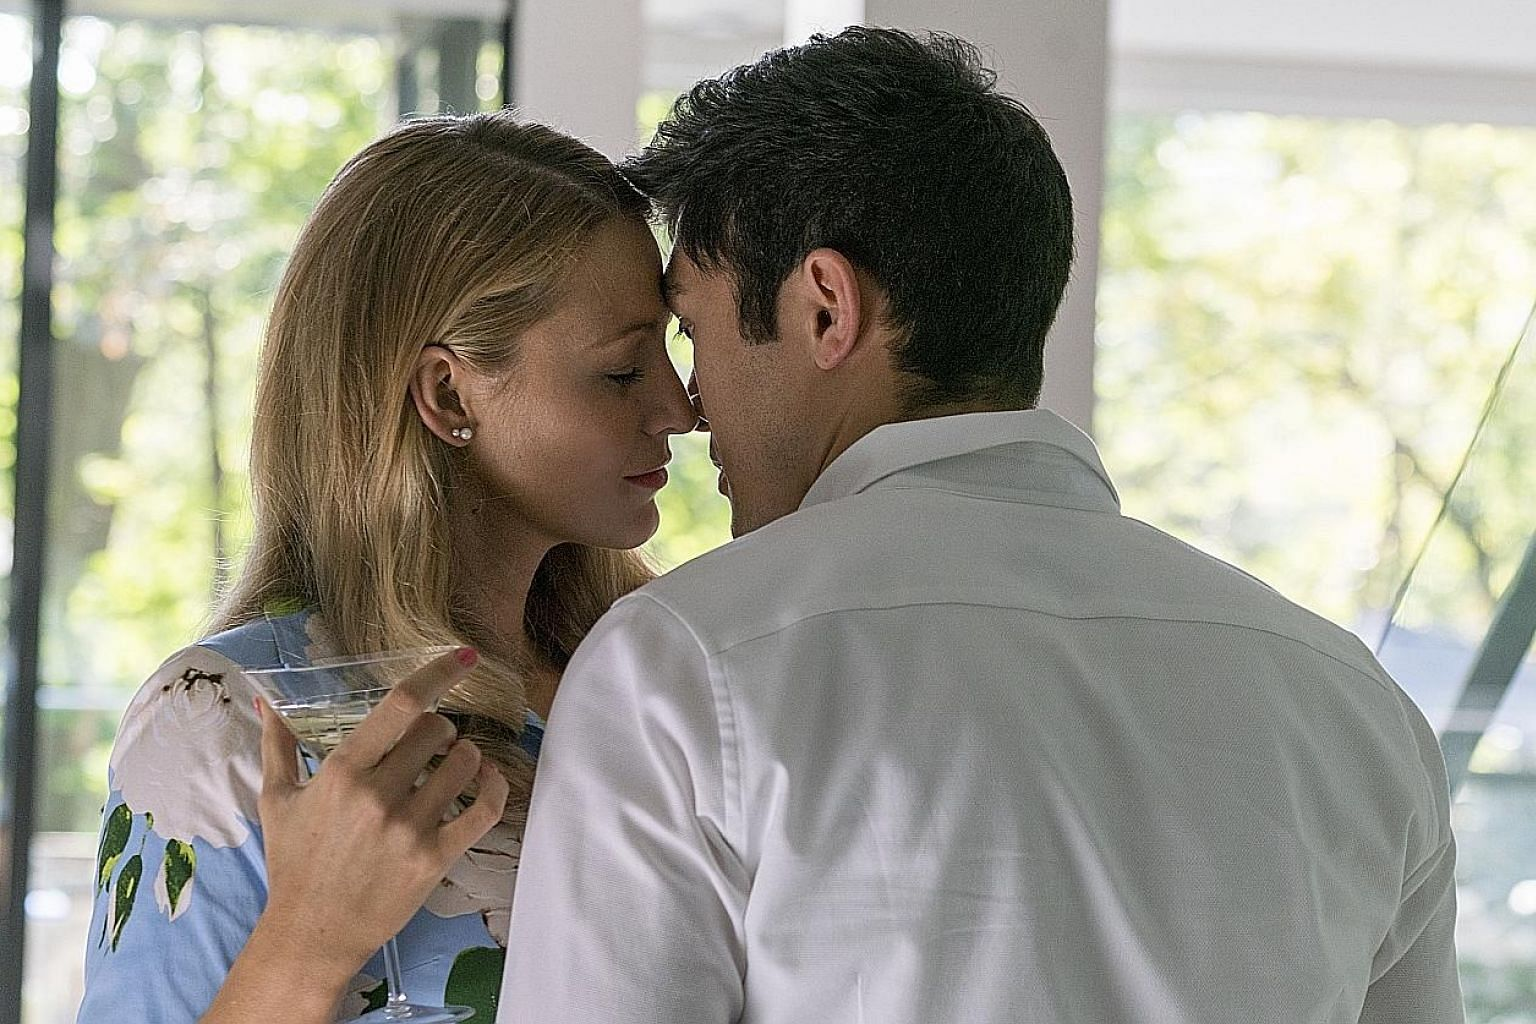 Henry Golding and Blake Lively in A Simple Favor.